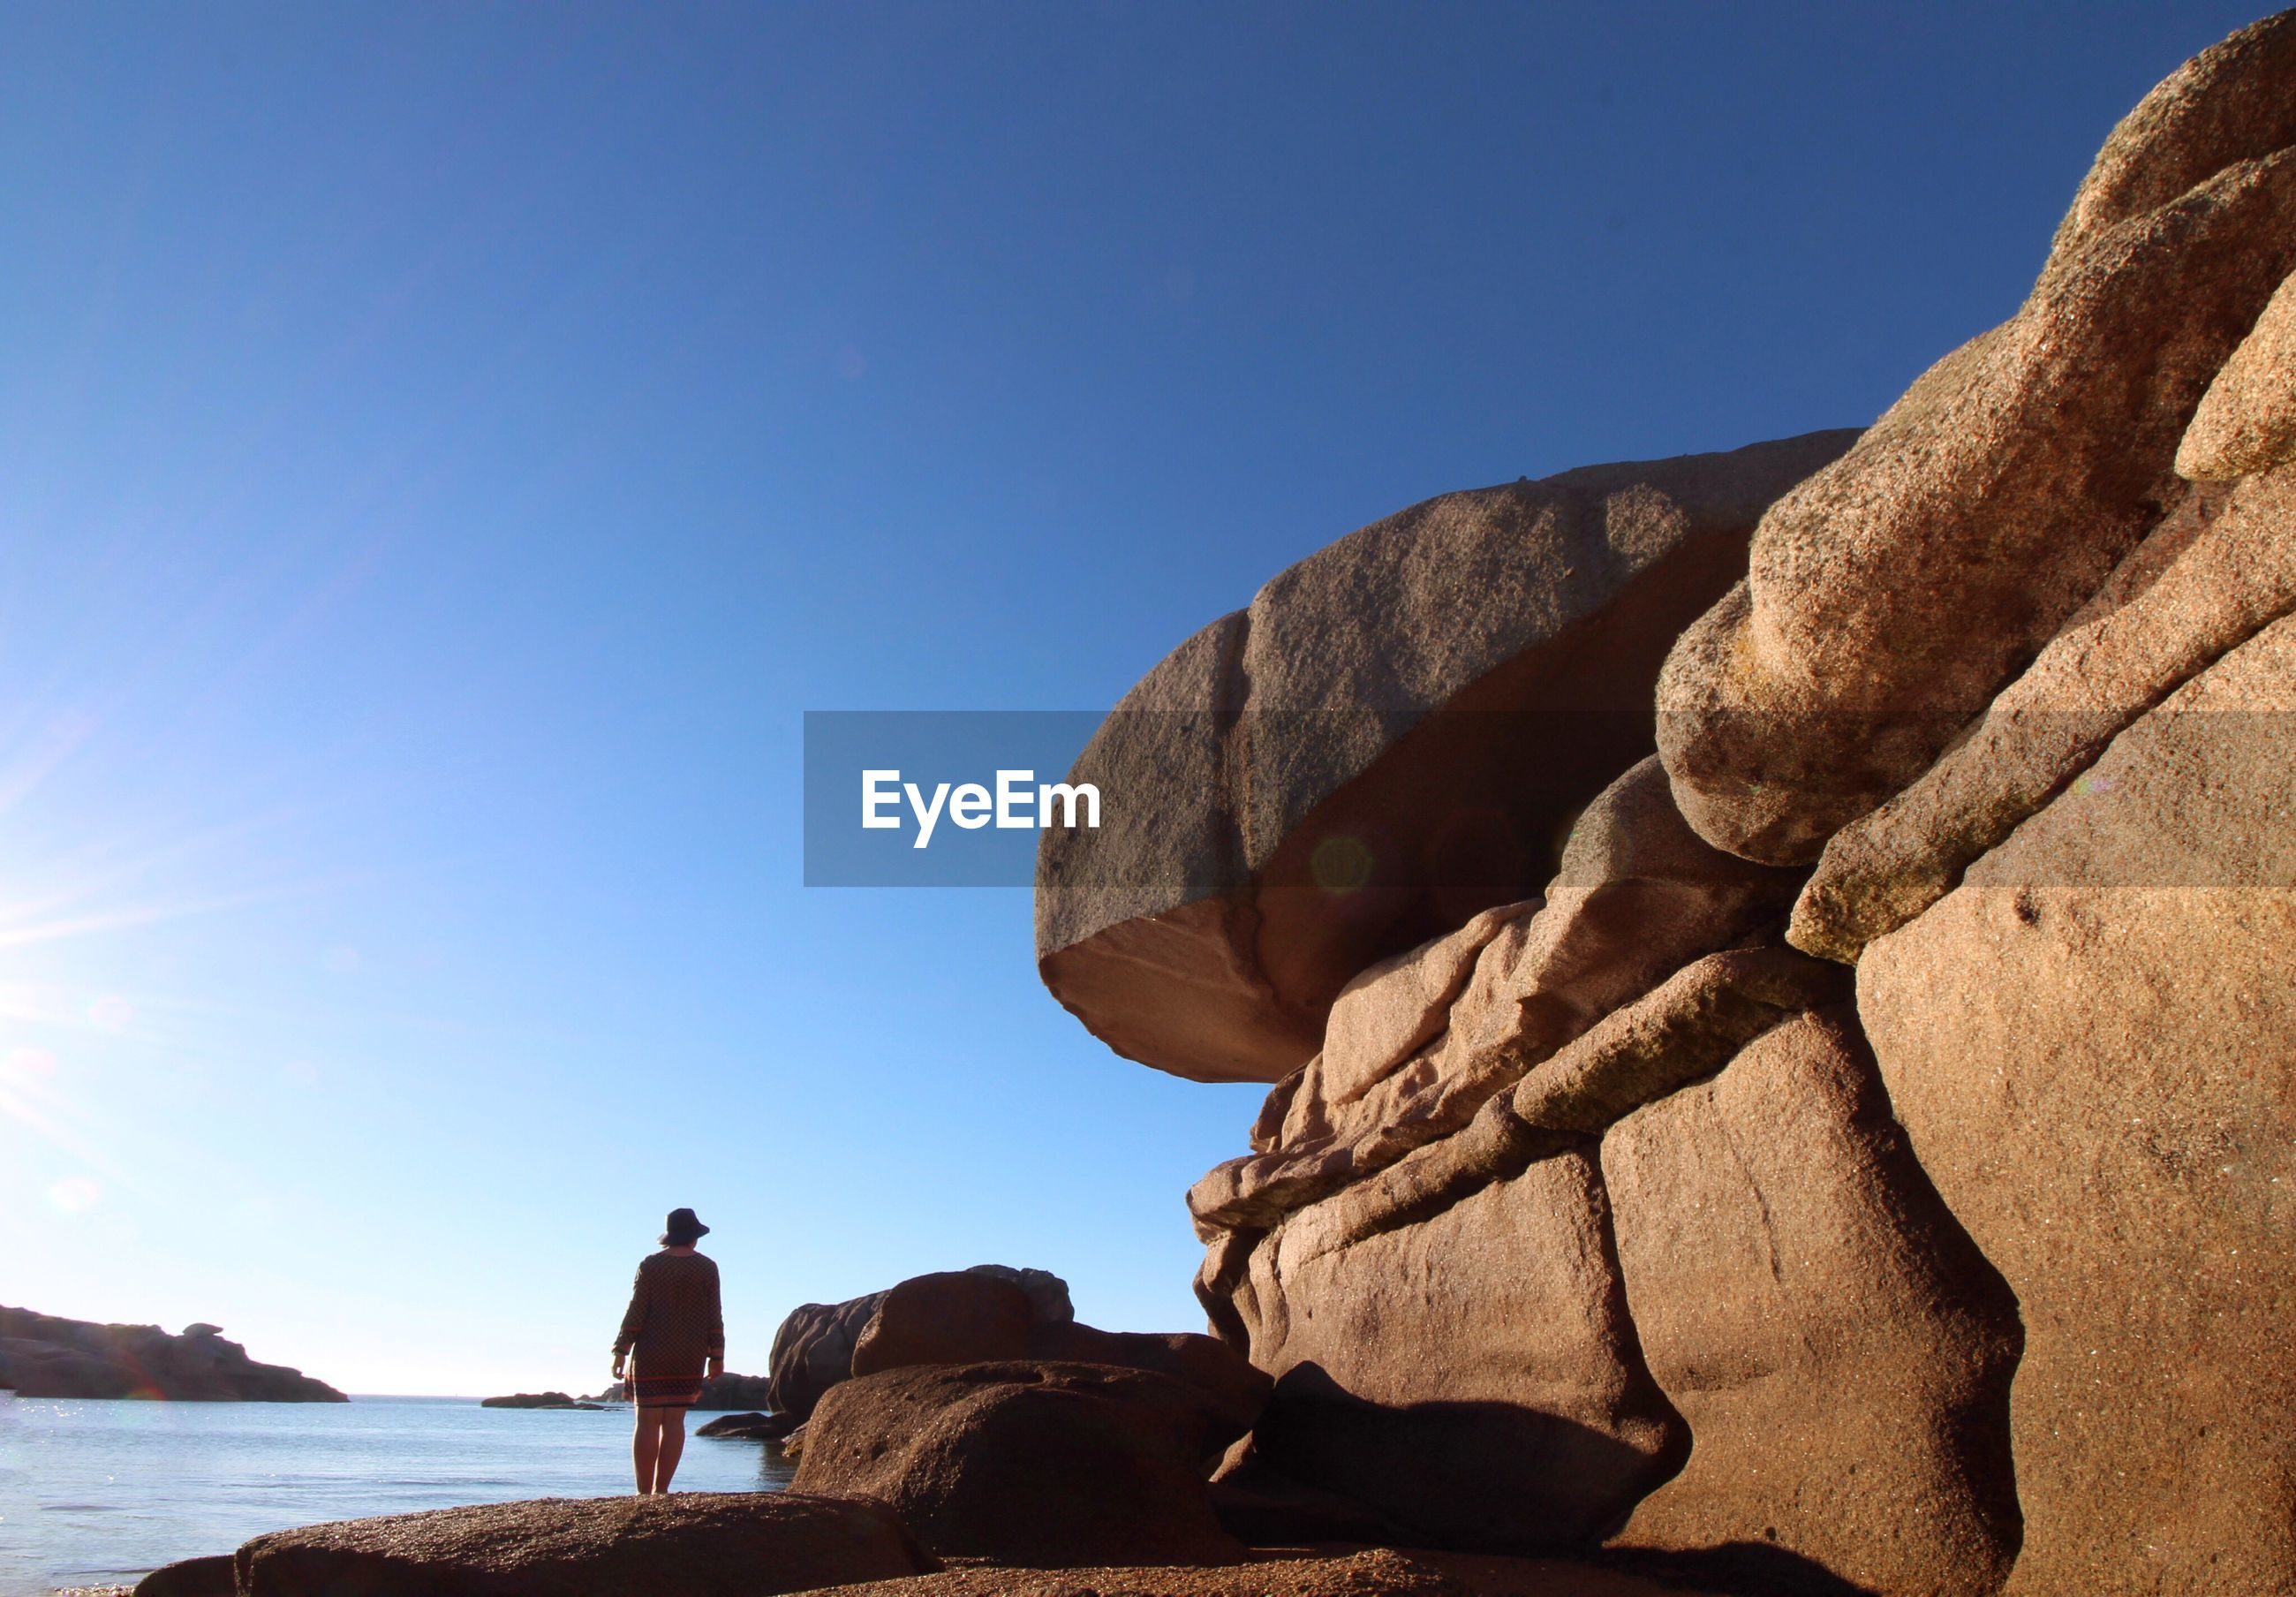 Rear view of woman standing by rock formation at sea against clear blue sky